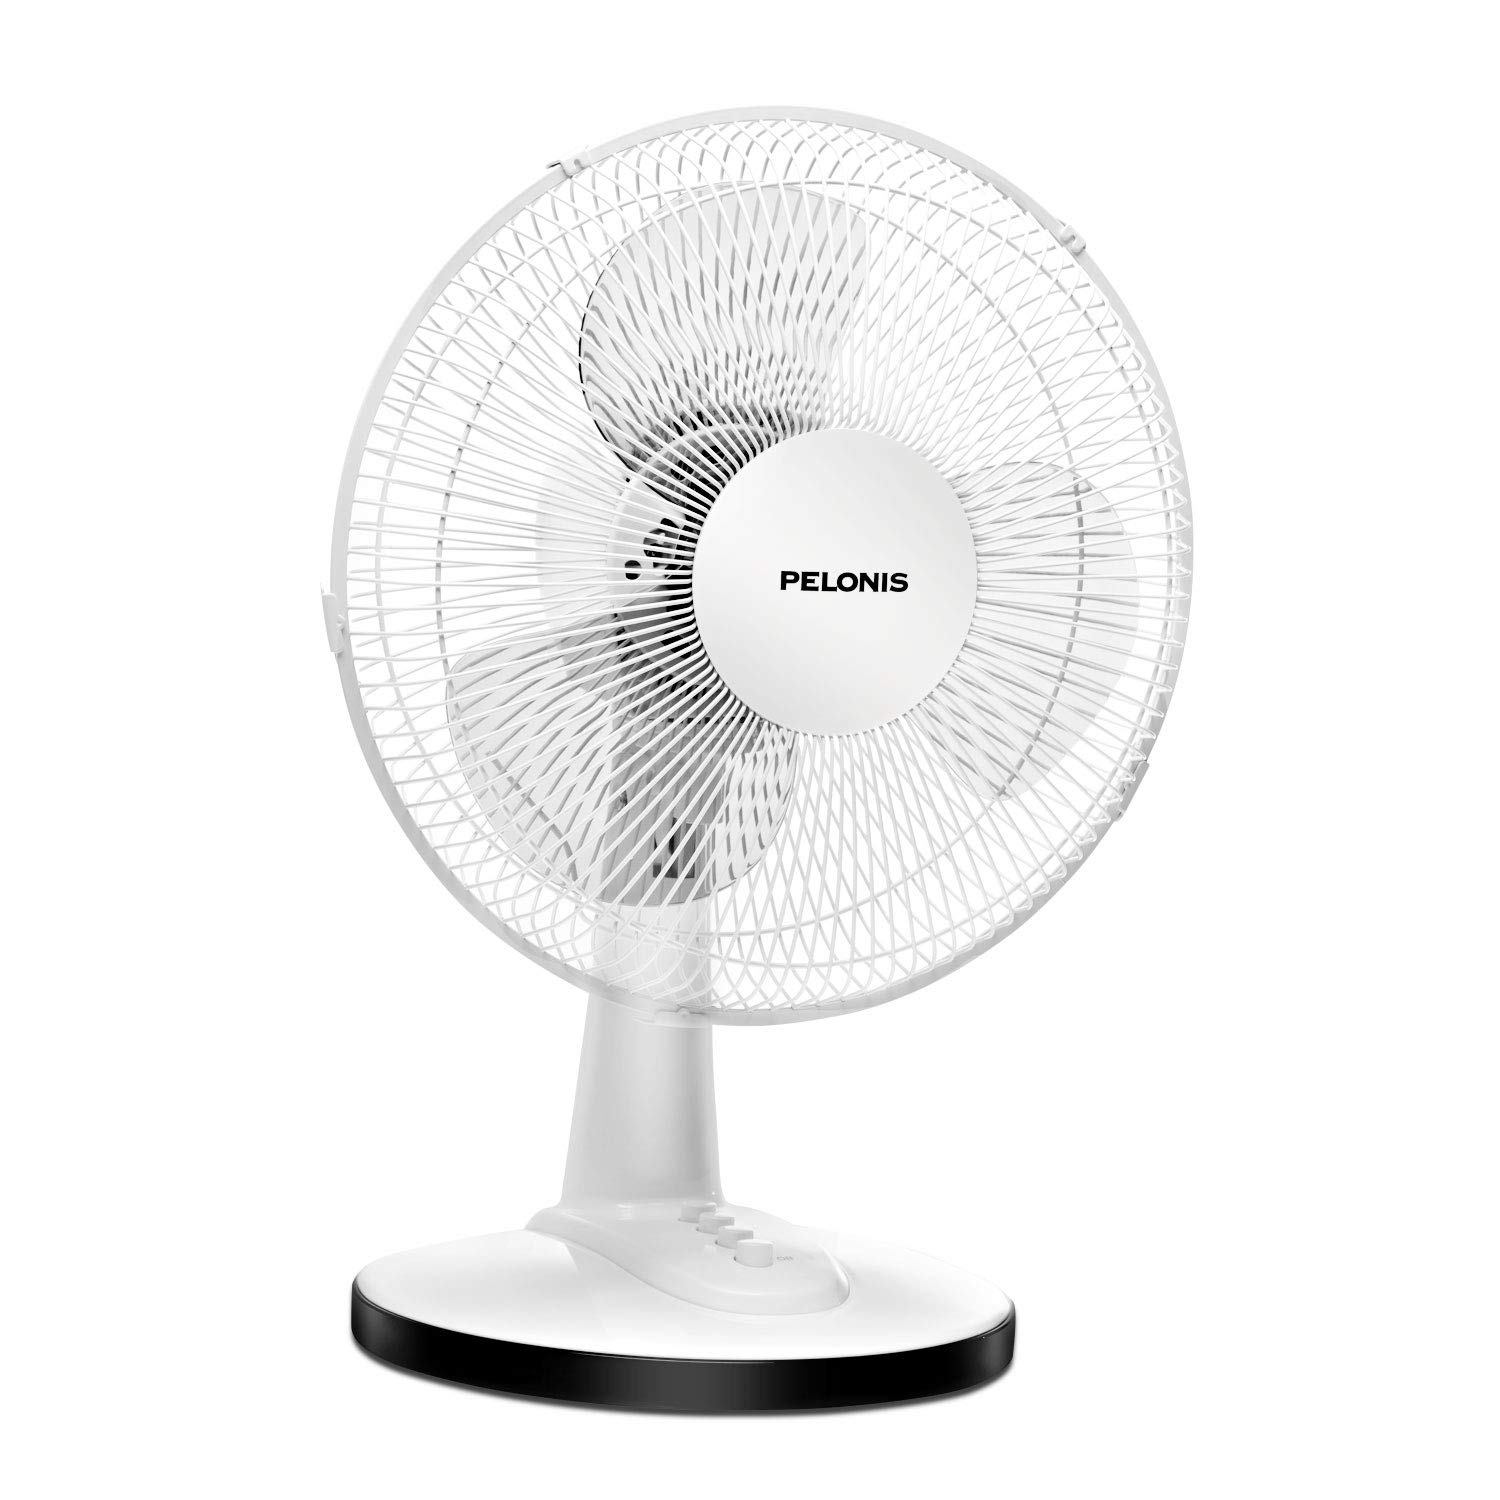 PELONIS FT30-15H Portable 3-Speed 12-Inch Oscillating Table Air Circulation Fan, White, 12 Inch by PELONIS